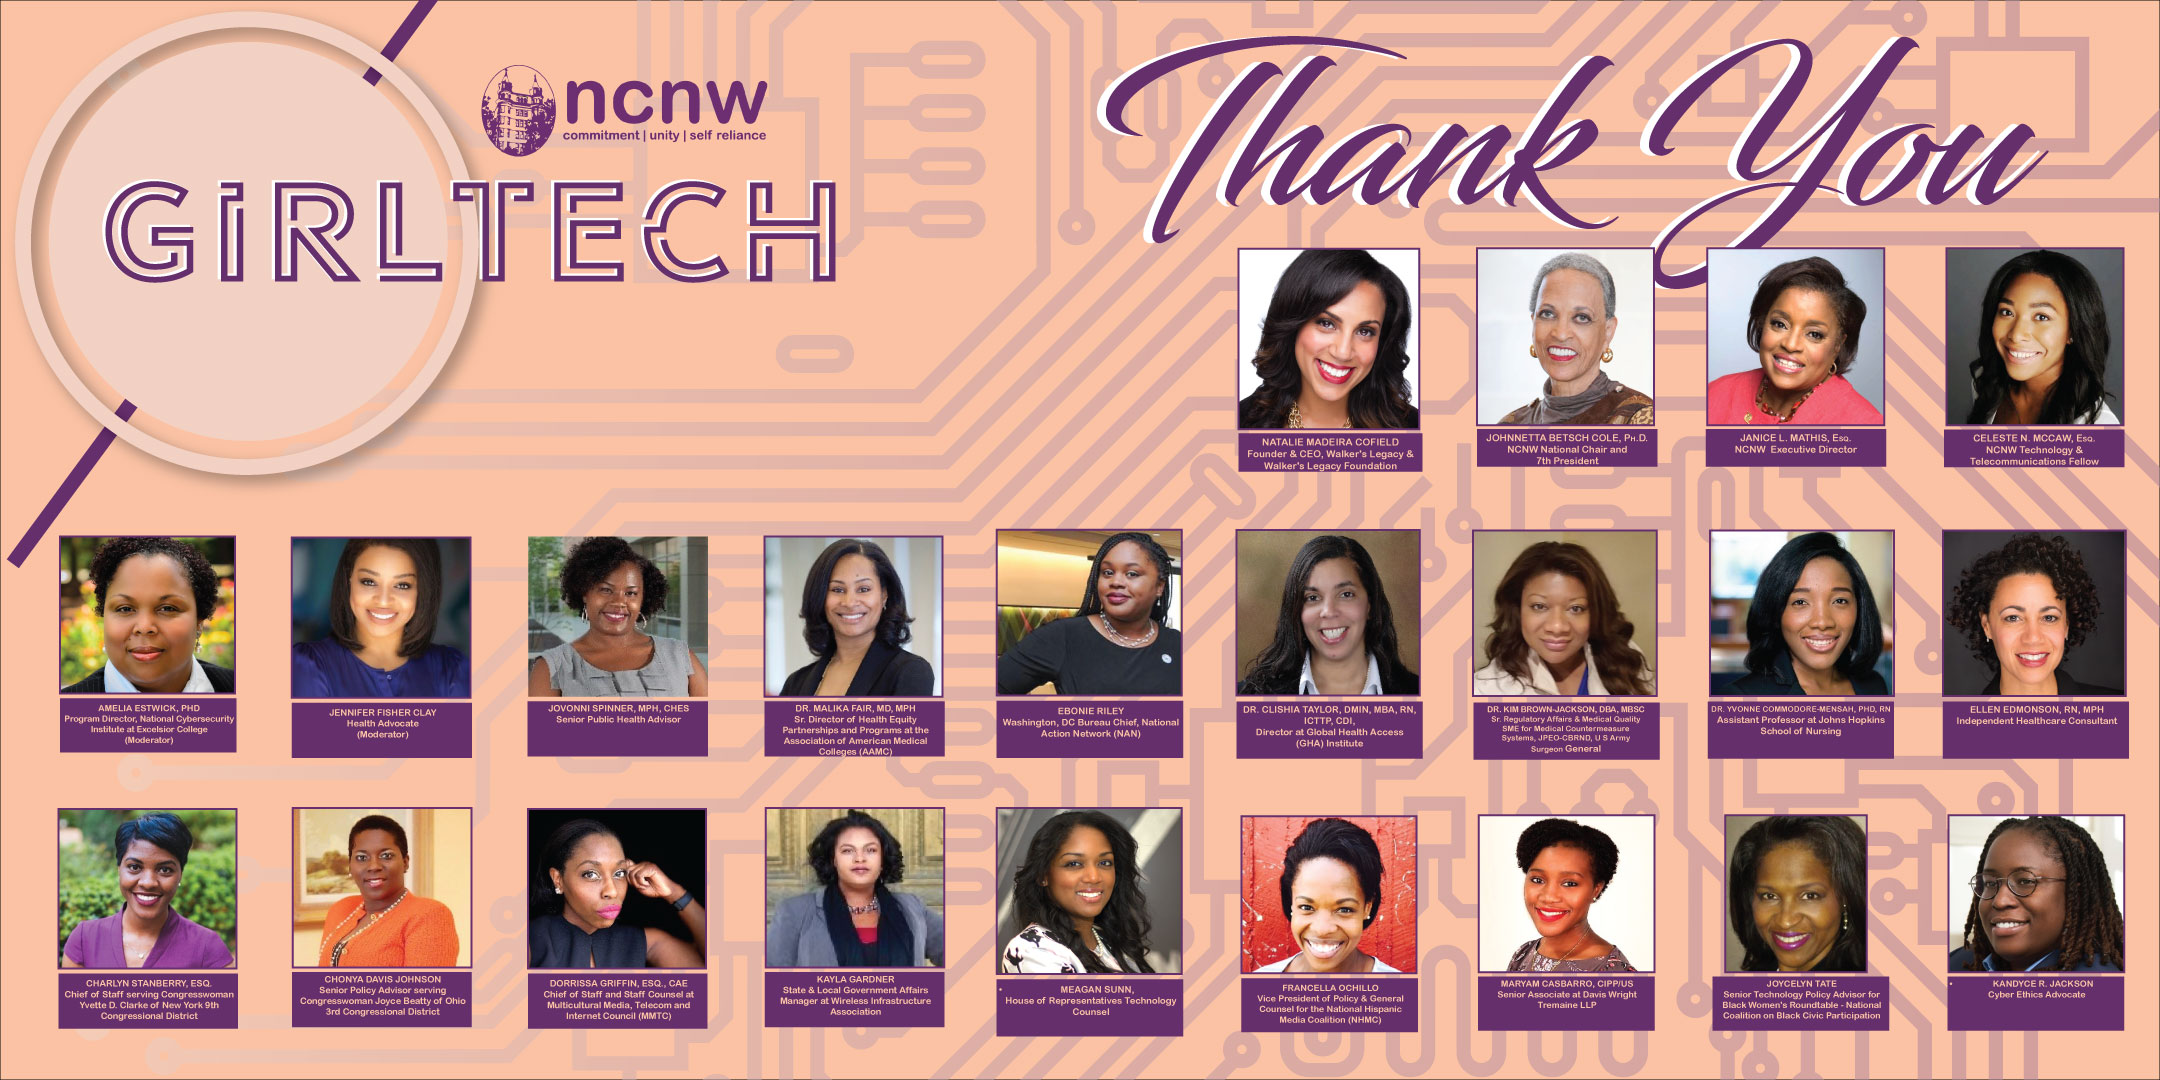 The National Council of Negro Women, Inc.